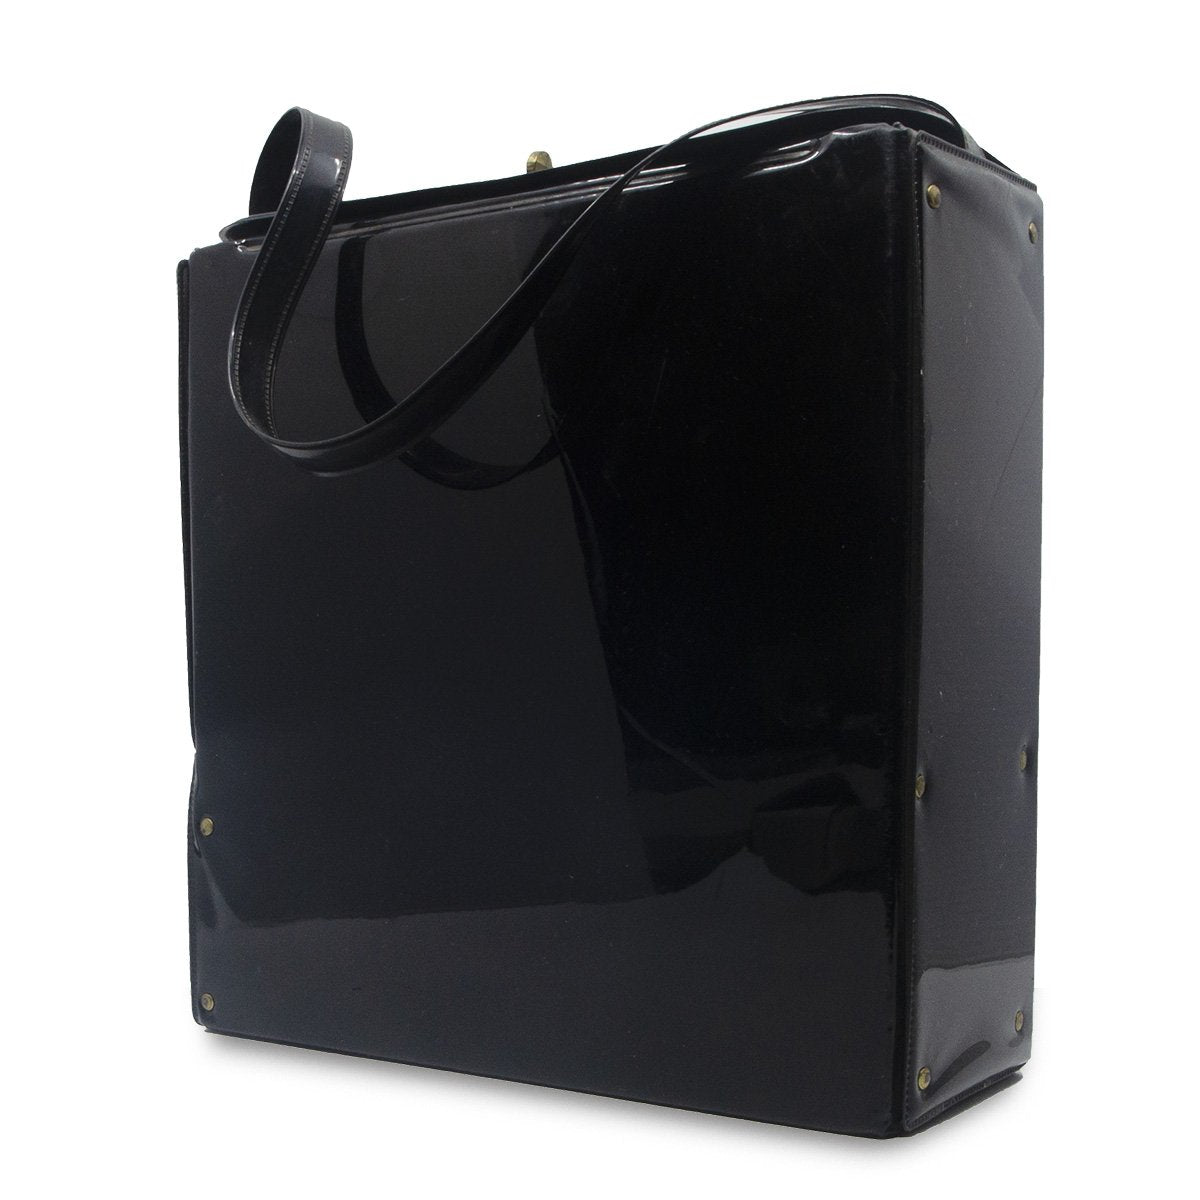 Black tote, shoe carrier, shoe case